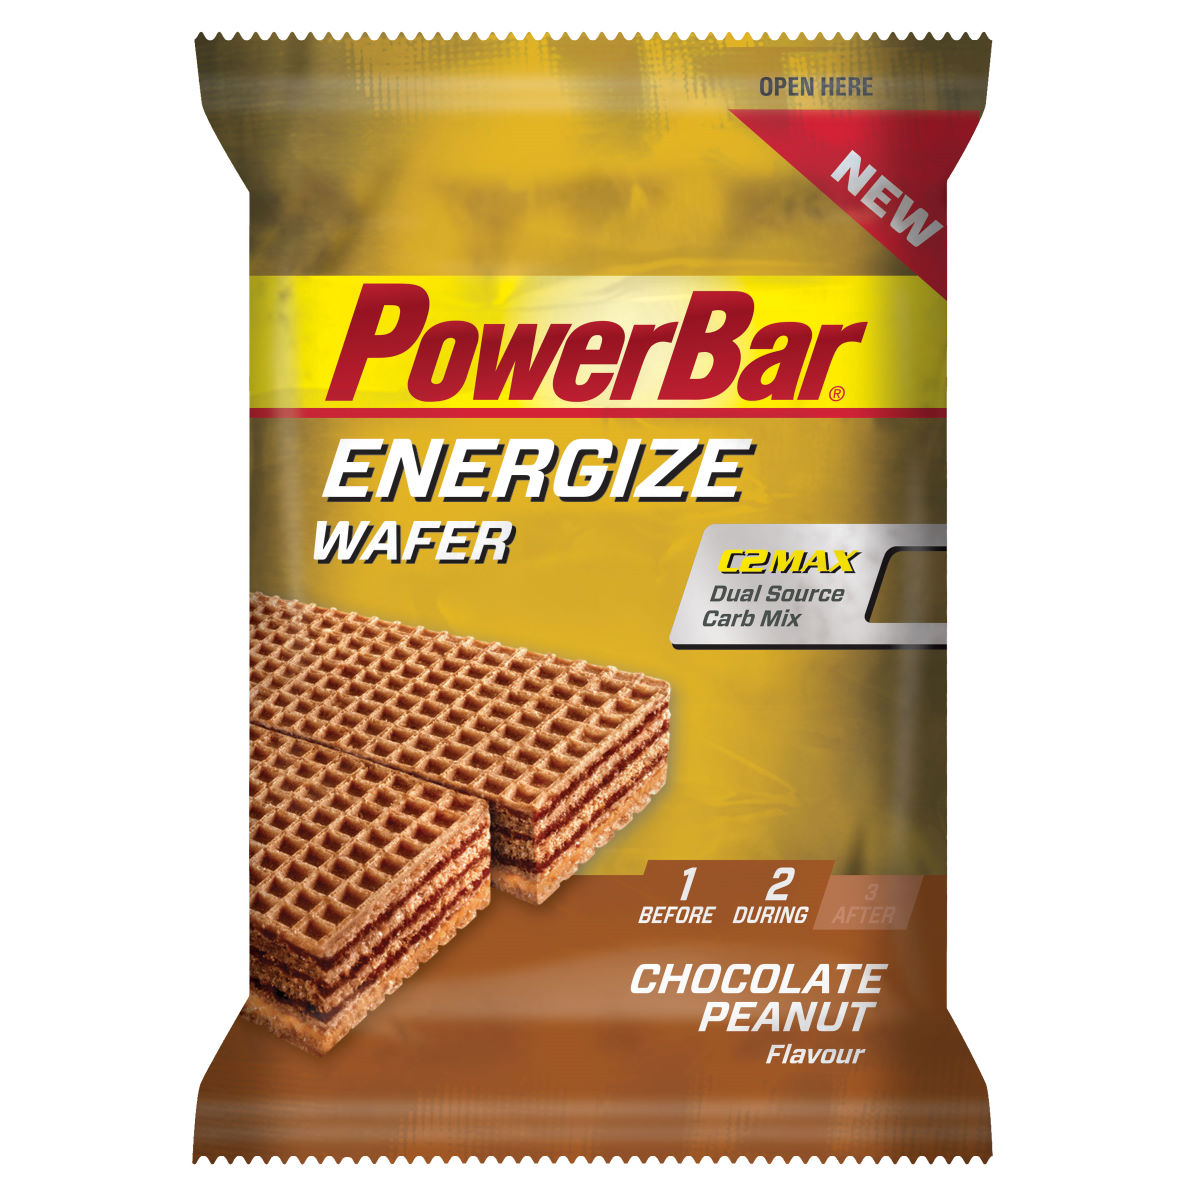 PowerBar Energize Wafer Bar 12 x 40g